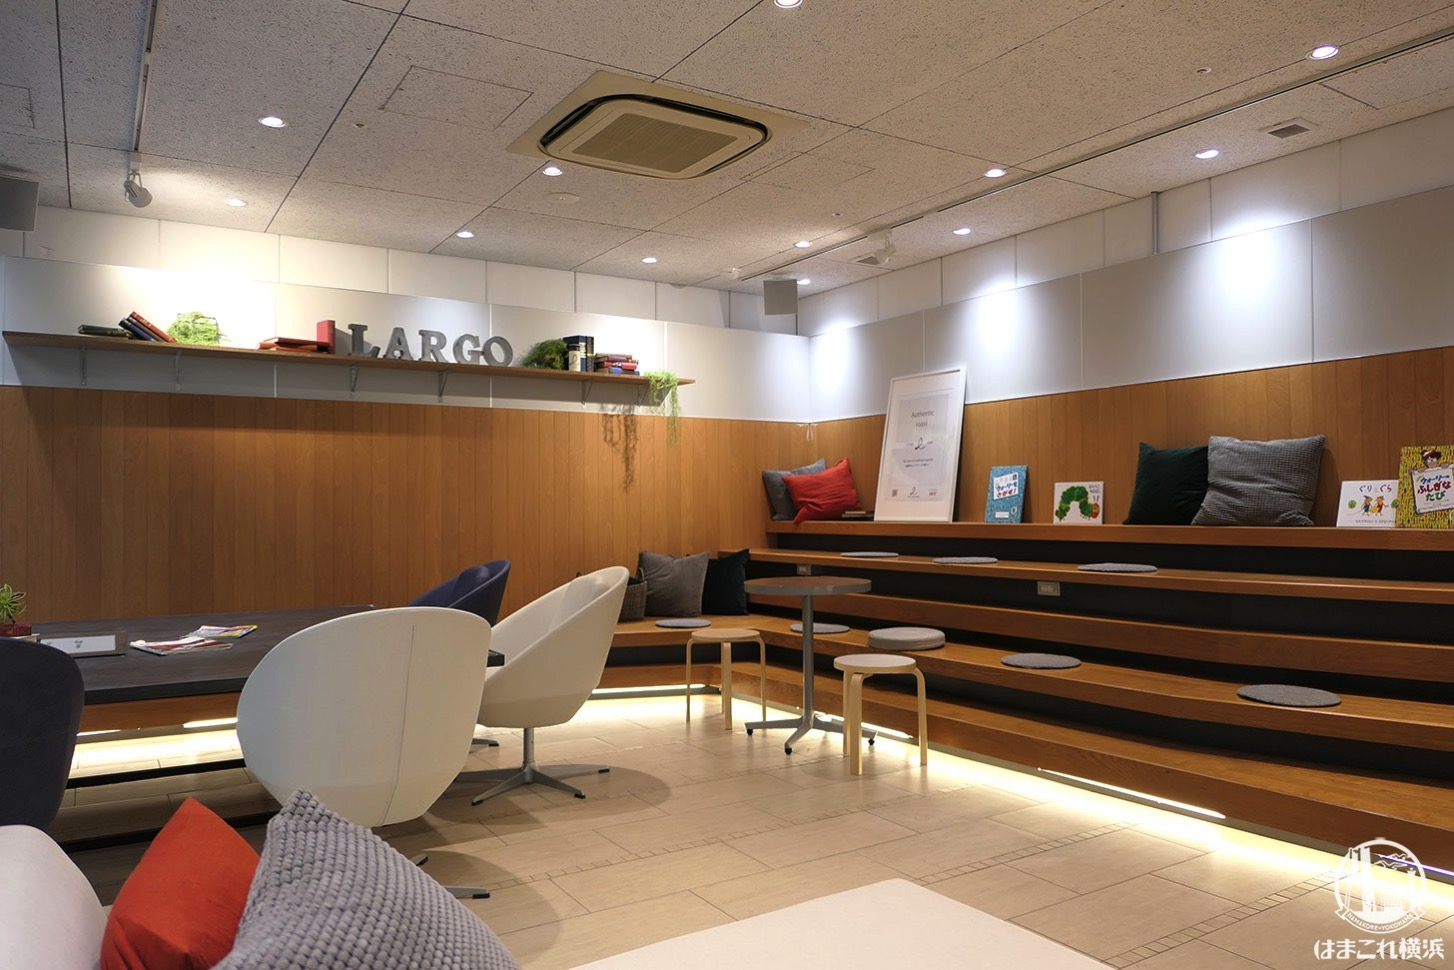 Largo Cafe & Bar Lounge presented by UCC 店内席